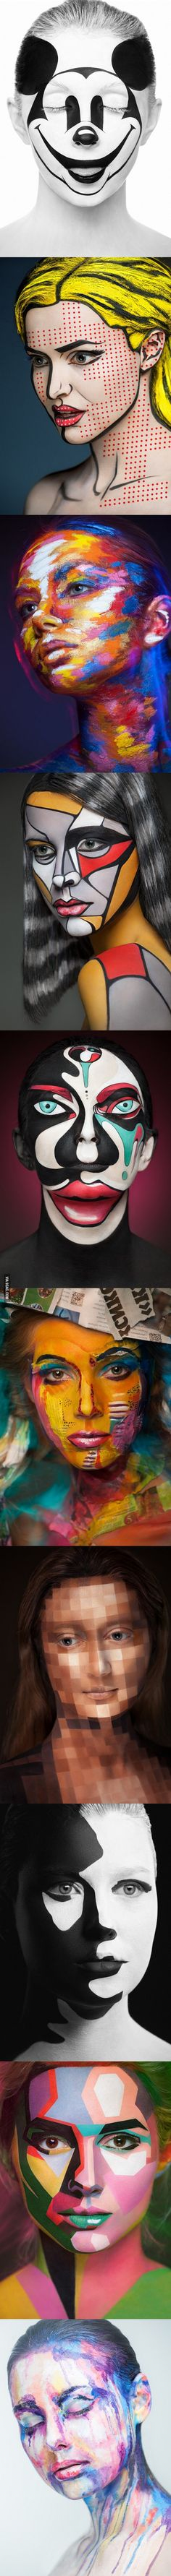 Amazing makeup transforms models into iconic works of art. Plenty of inspiration here for next Halloween ( can never start too early! Make Up Art, How To Make, Amazing Art, Amazing Makeup, Amazing Body, Awesome, Art Visage, Back Painting, Fx Makeup